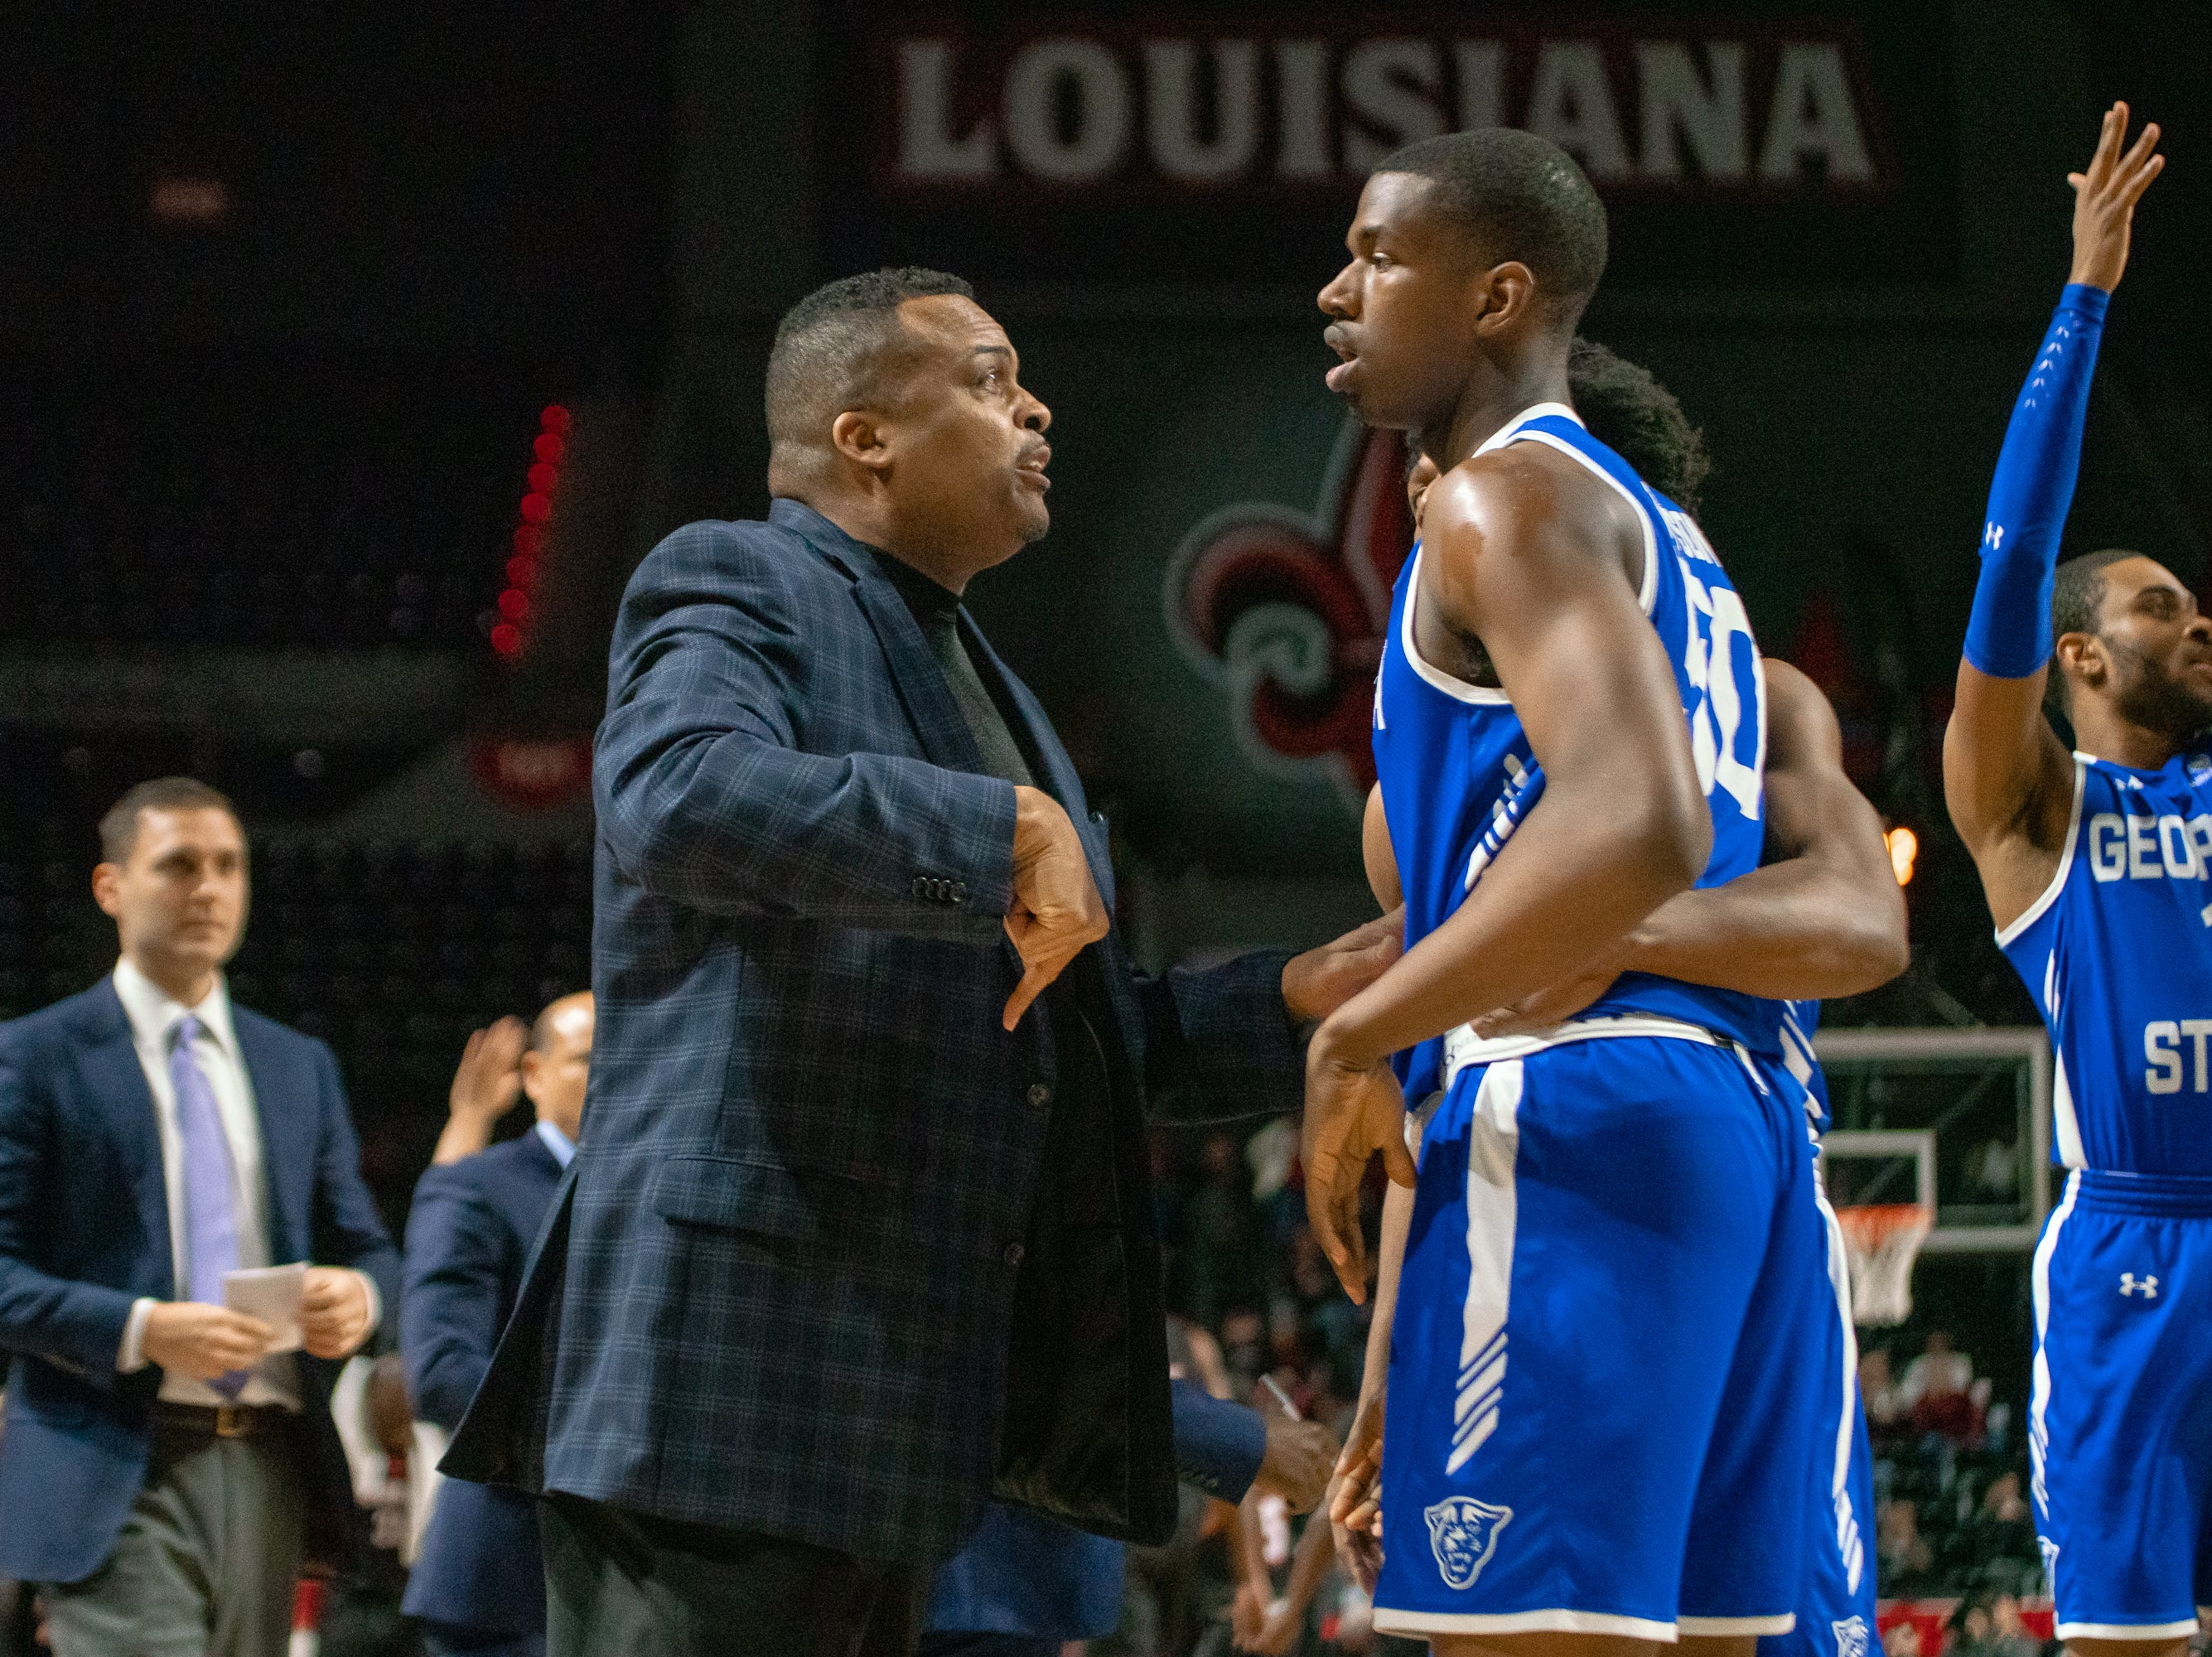 Georgia State's head basketball coach Ron Hunter talks to a player during a time-out as the Ragin' Cajuns take on the Georgia State Panthers at the Cajundome on Feb. 8, 2019.